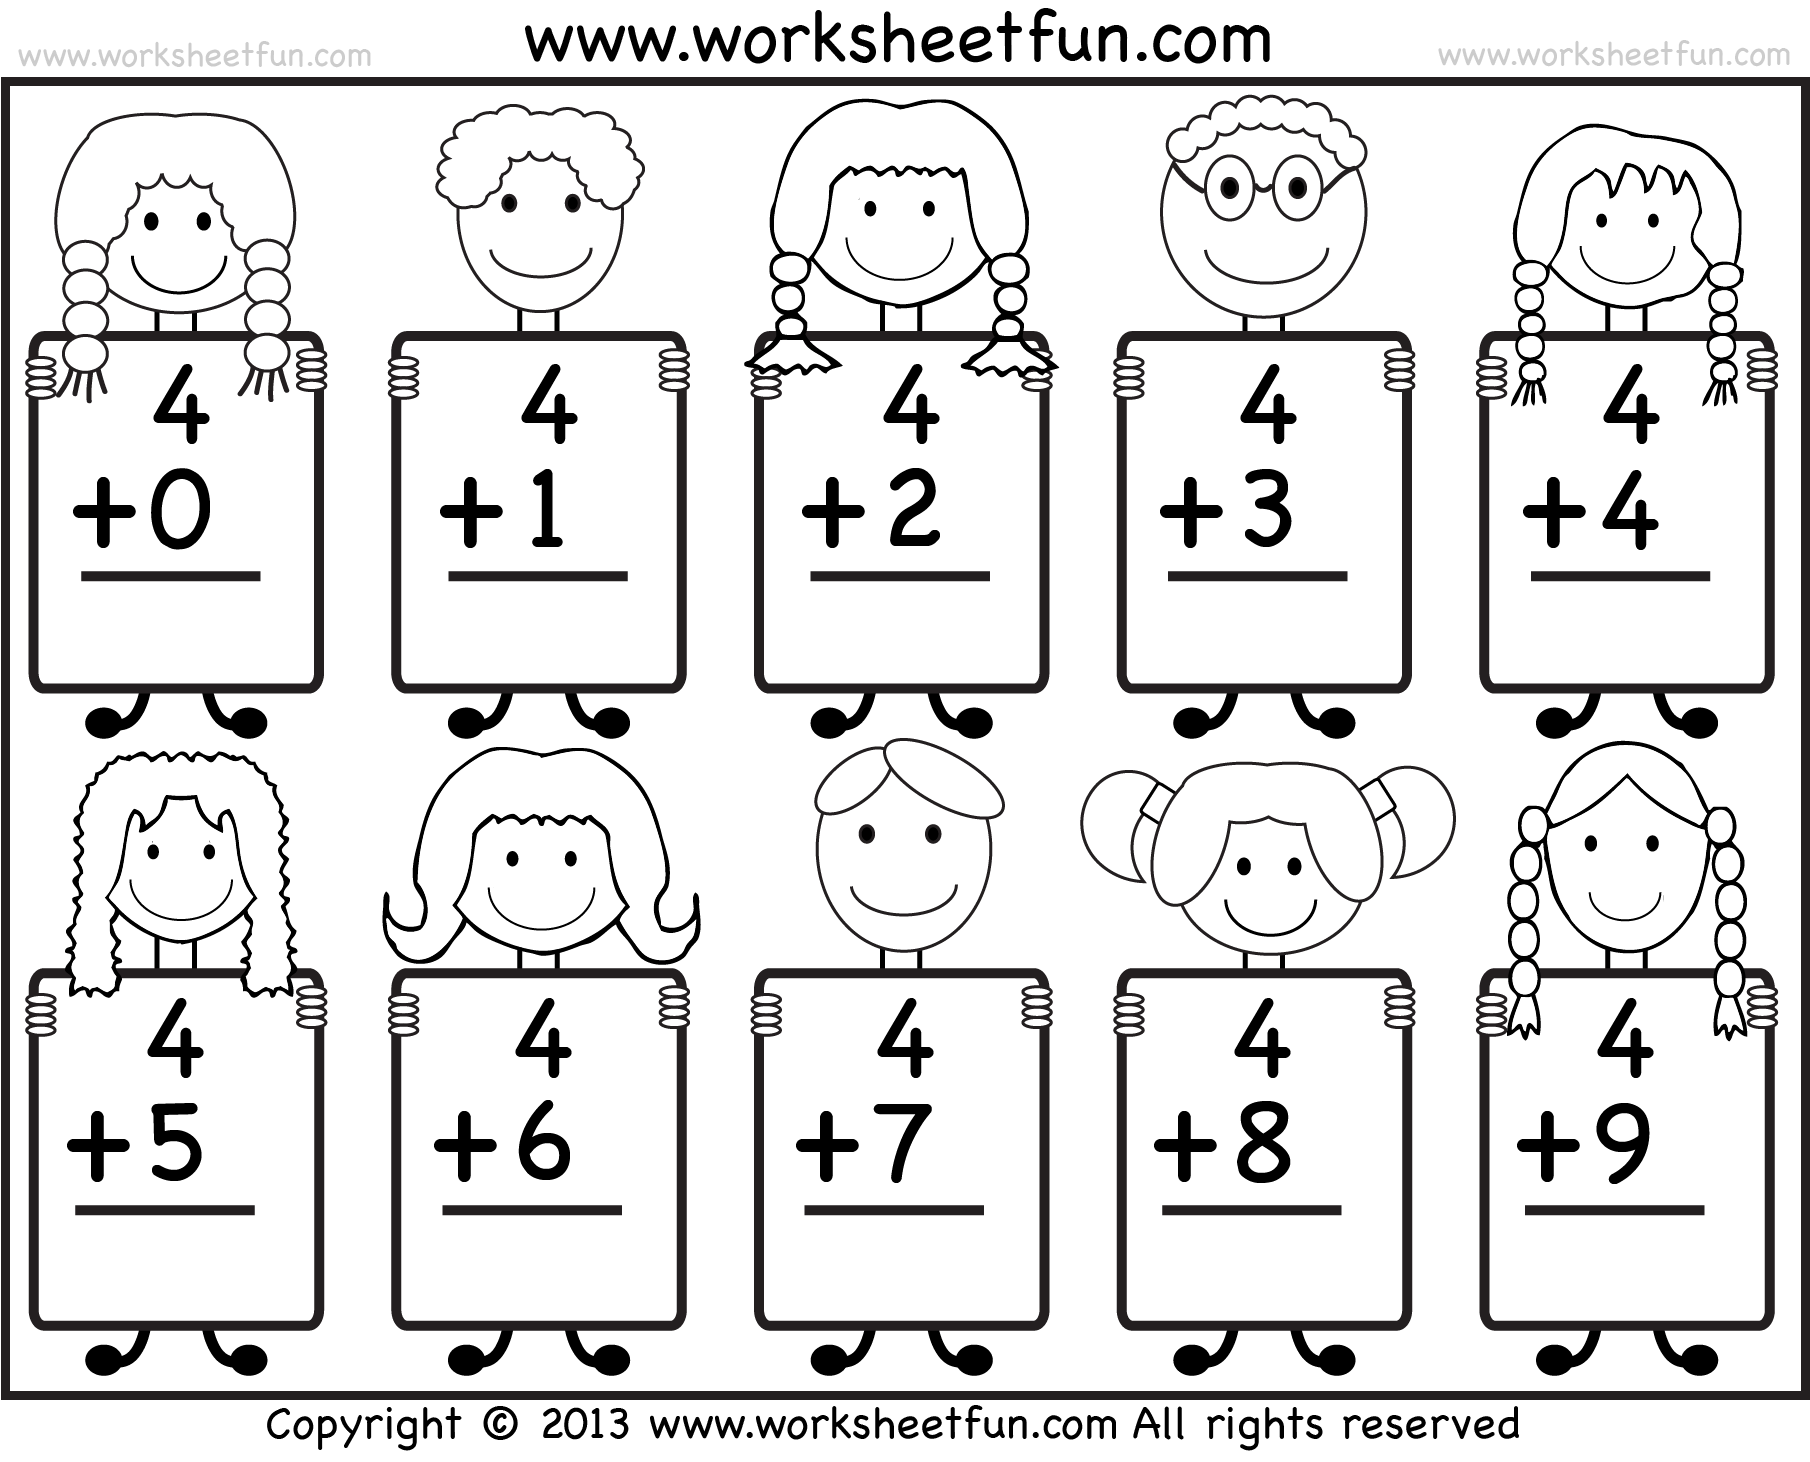 Worksheet 8001035 Kindergarten Math Practice Worksheets Math – Math Kindergarten Worksheets